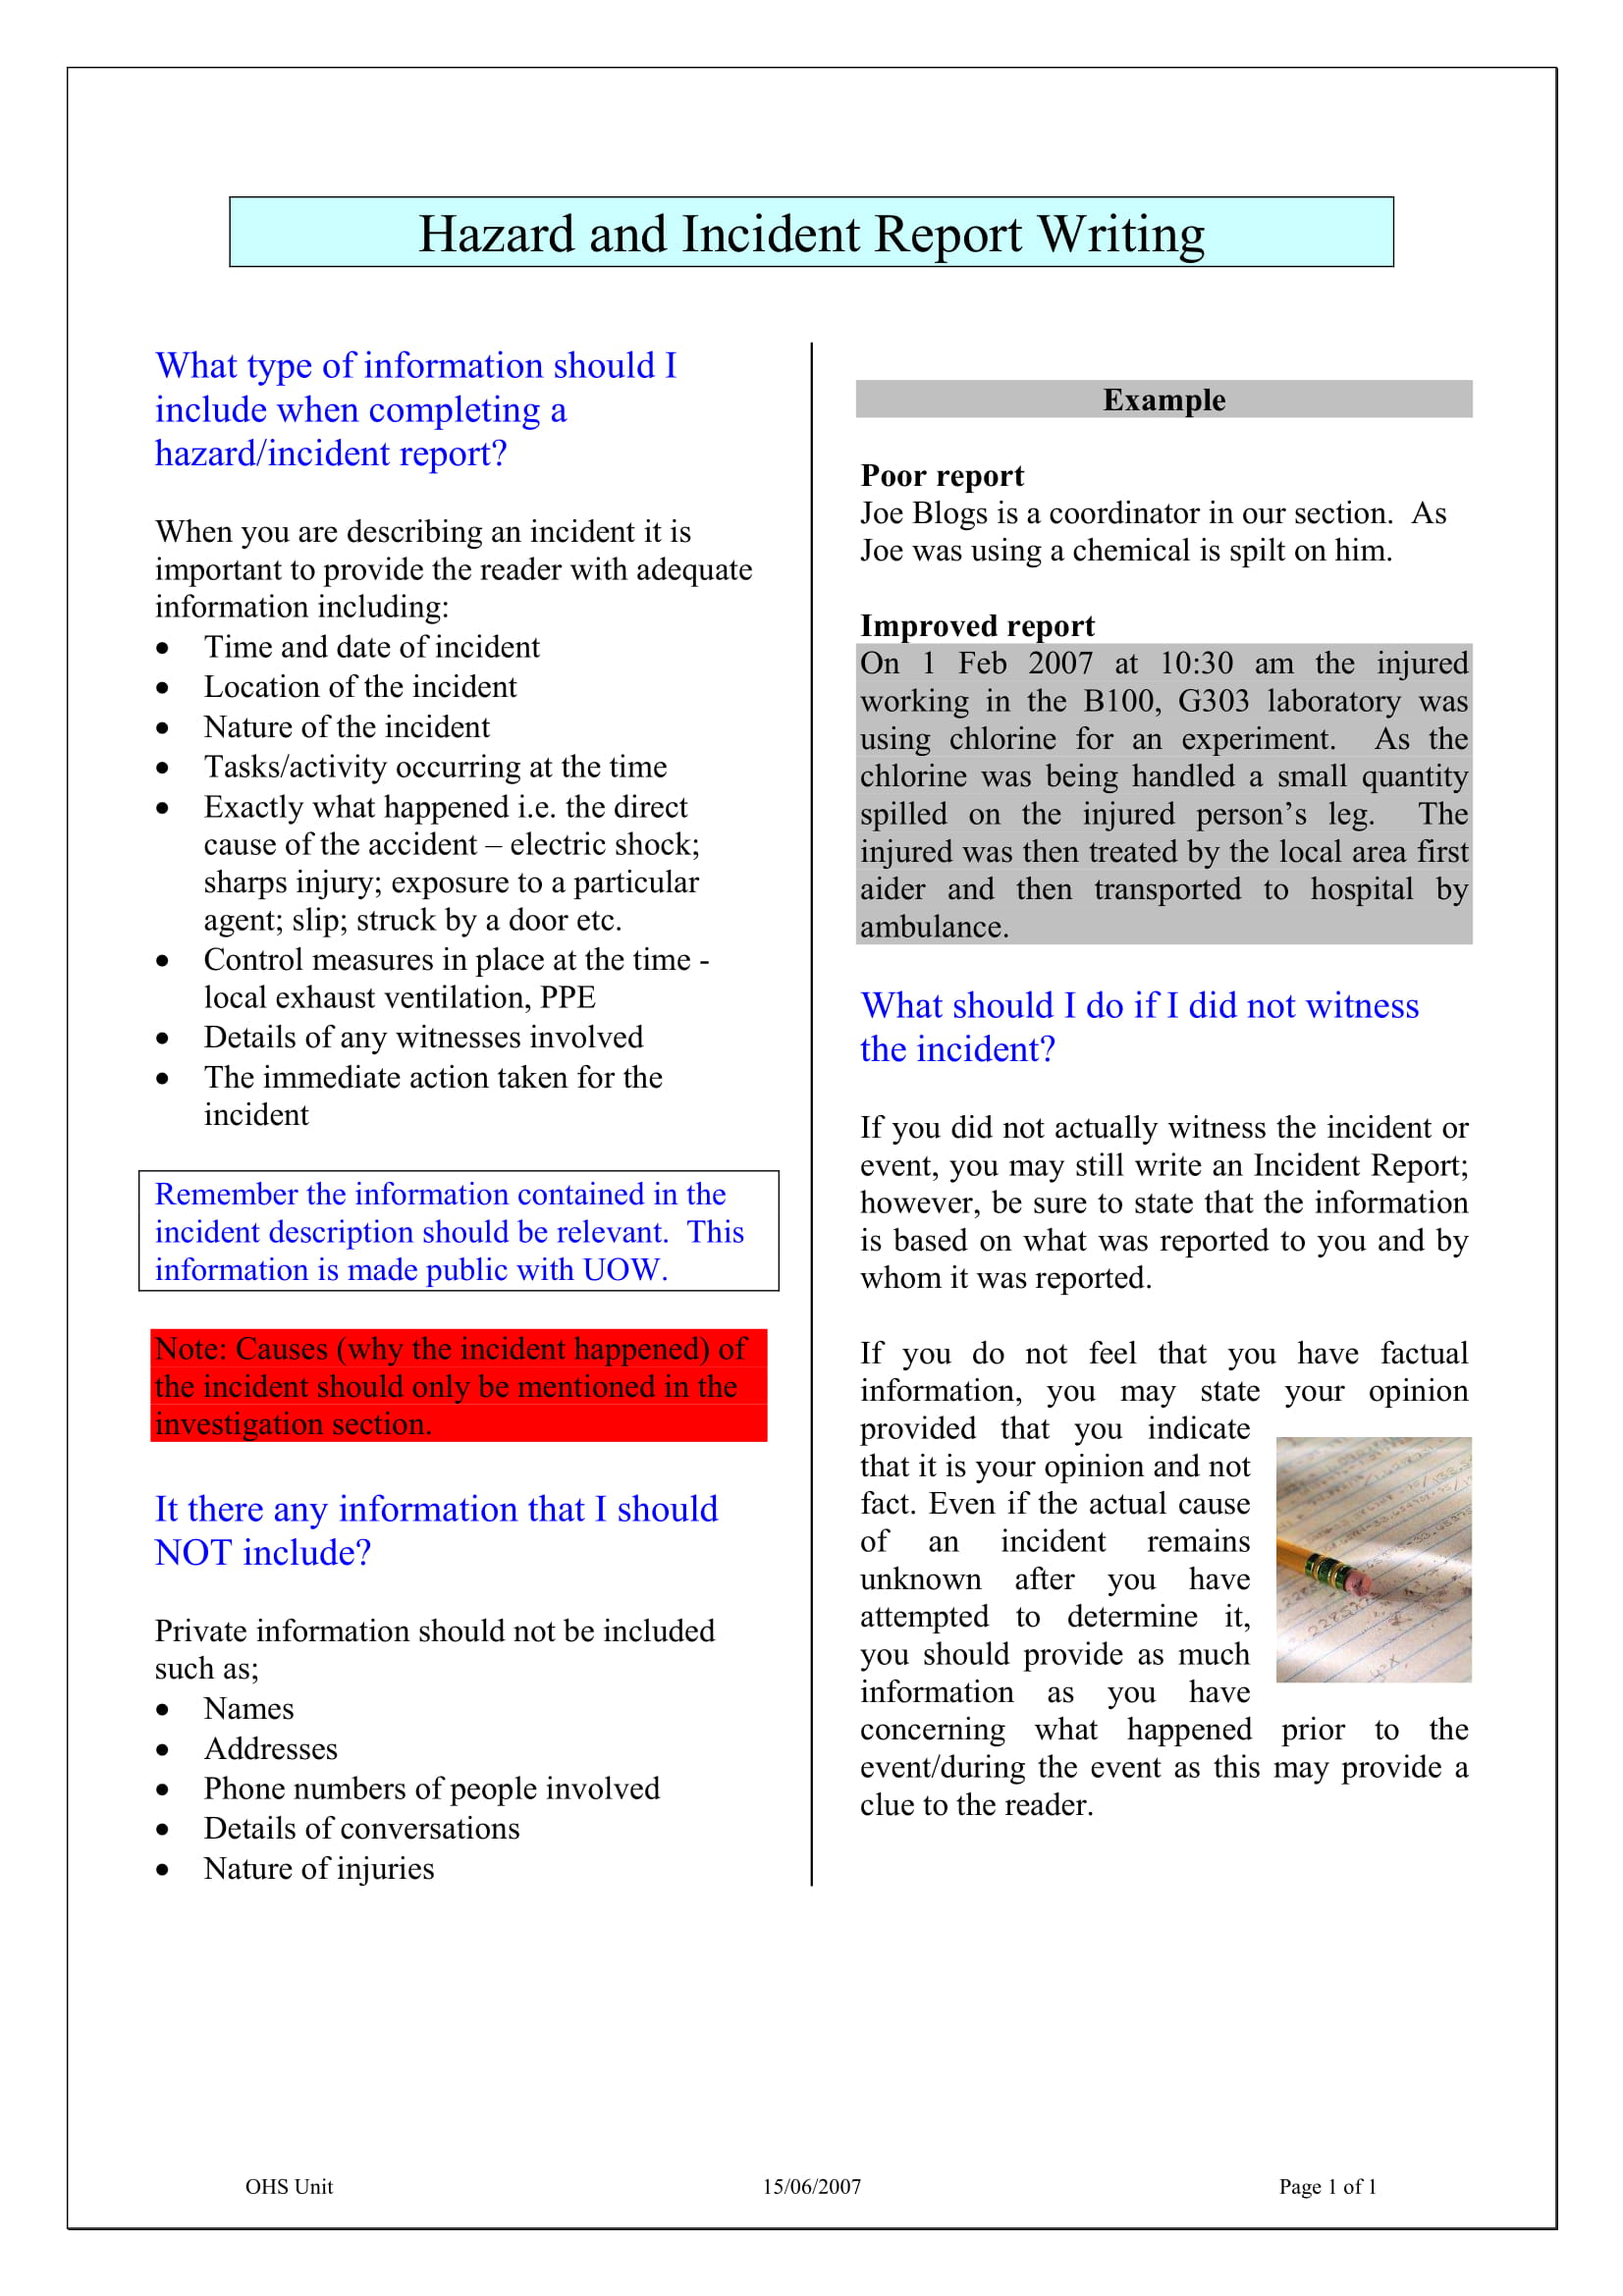 hazard and incident report writing example 1